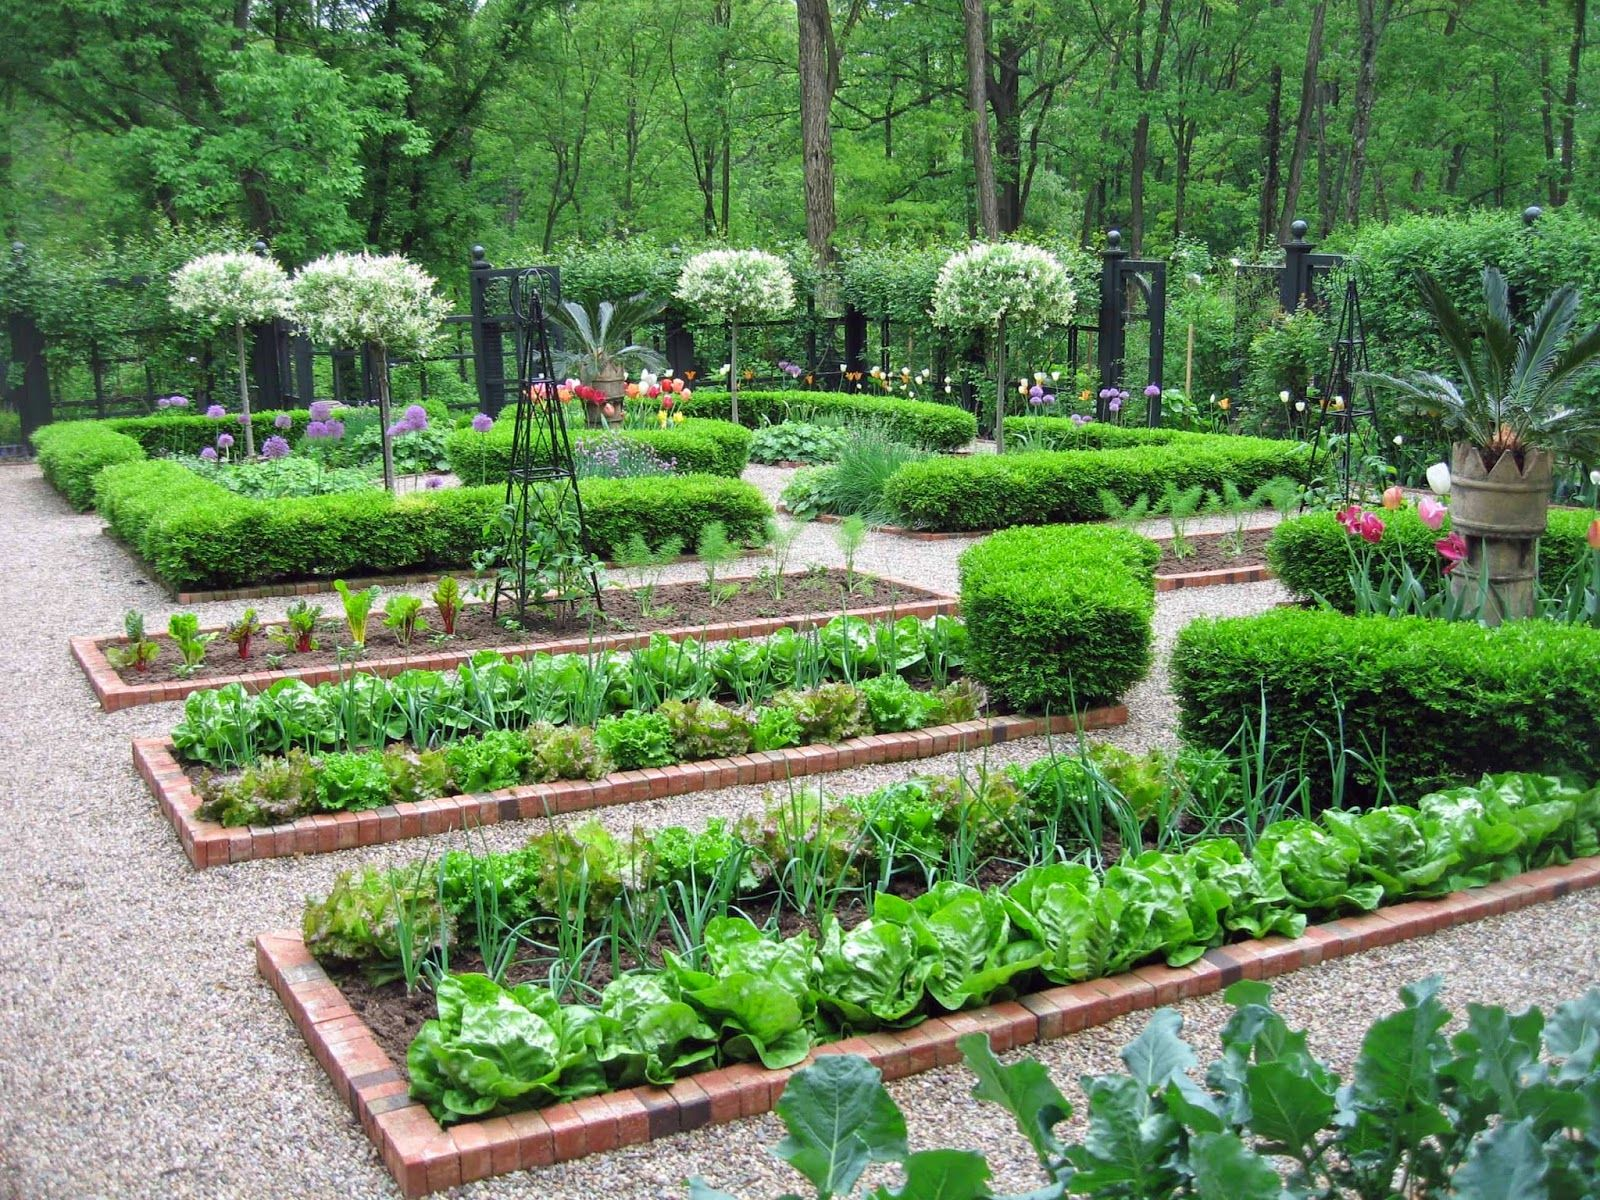 Kitchen garden design ideas - A Potager Is The French Term For An Ornamental Vegetable Or Kitchen Garden This Design